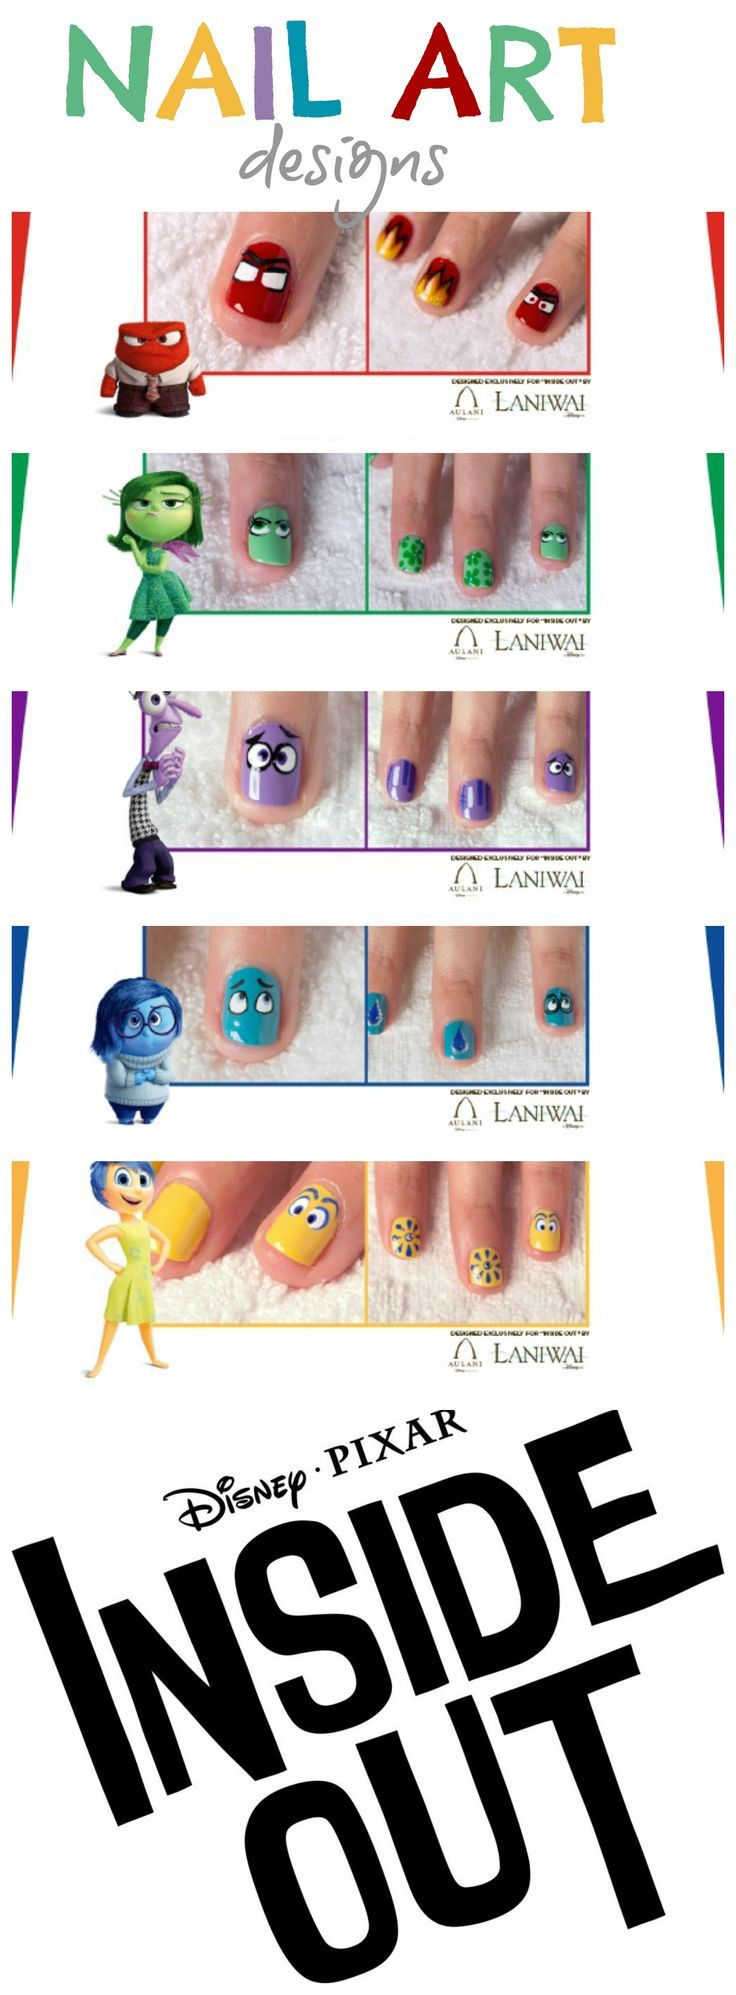 Inside Out Movie: Nail Art Designs. Free PDFs to download and print.